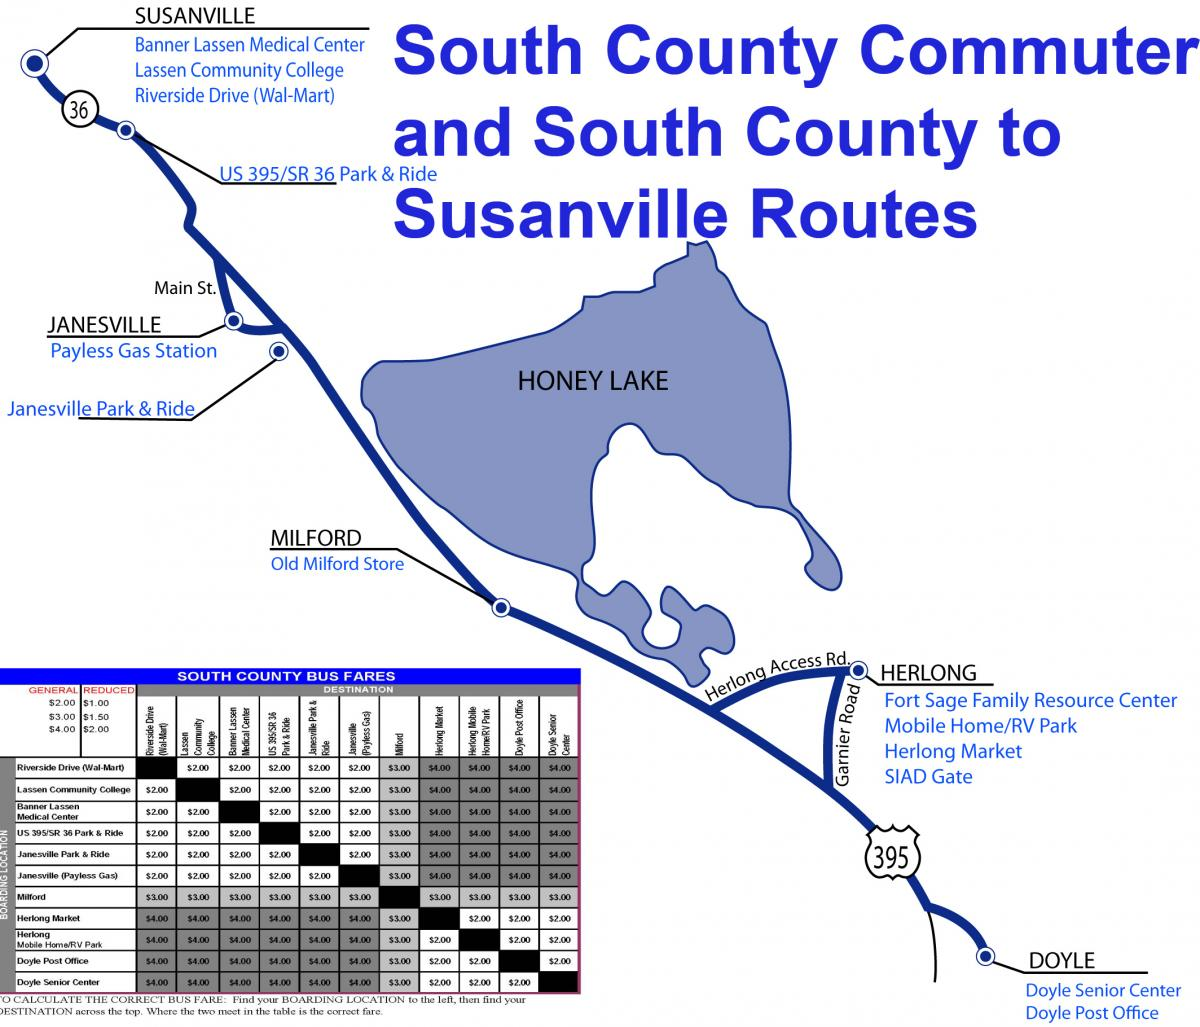 South County Commuter and South County to Susanvile Route Map